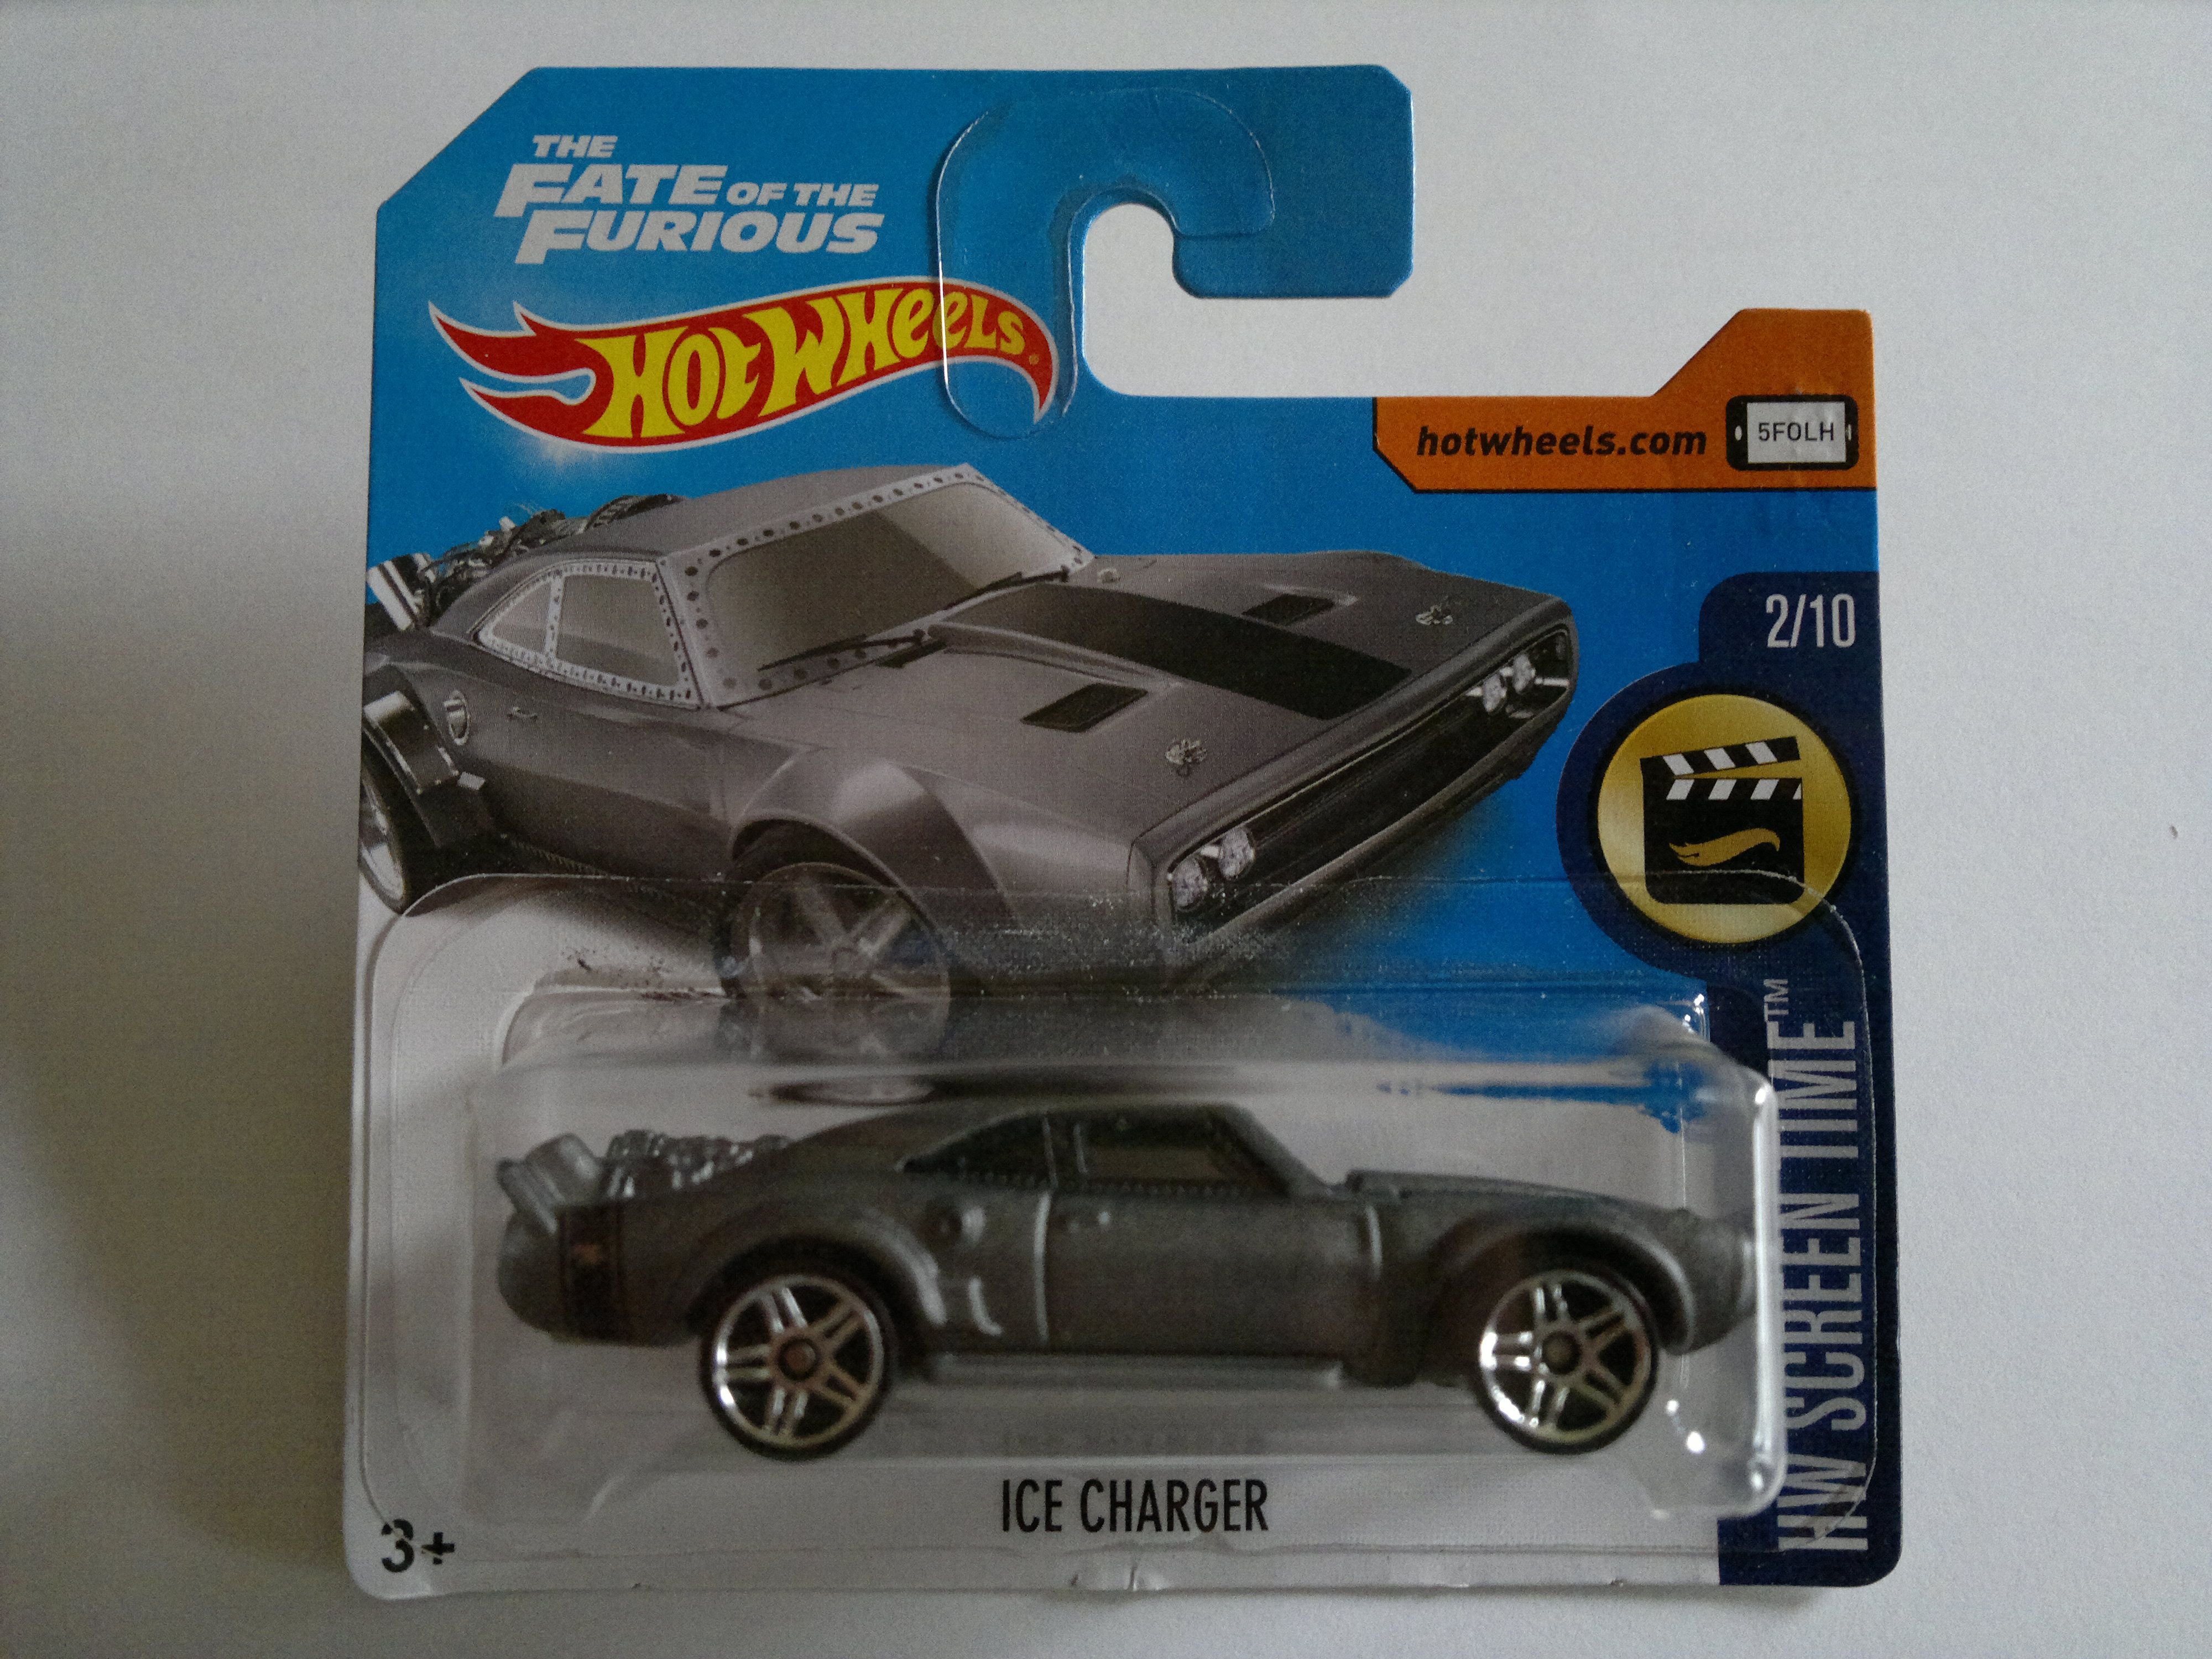 2017 dodge charger 1970 r t ice charger hot wheels hot wheels collection 1 64 pinterest. Black Bedroom Furniture Sets. Home Design Ideas